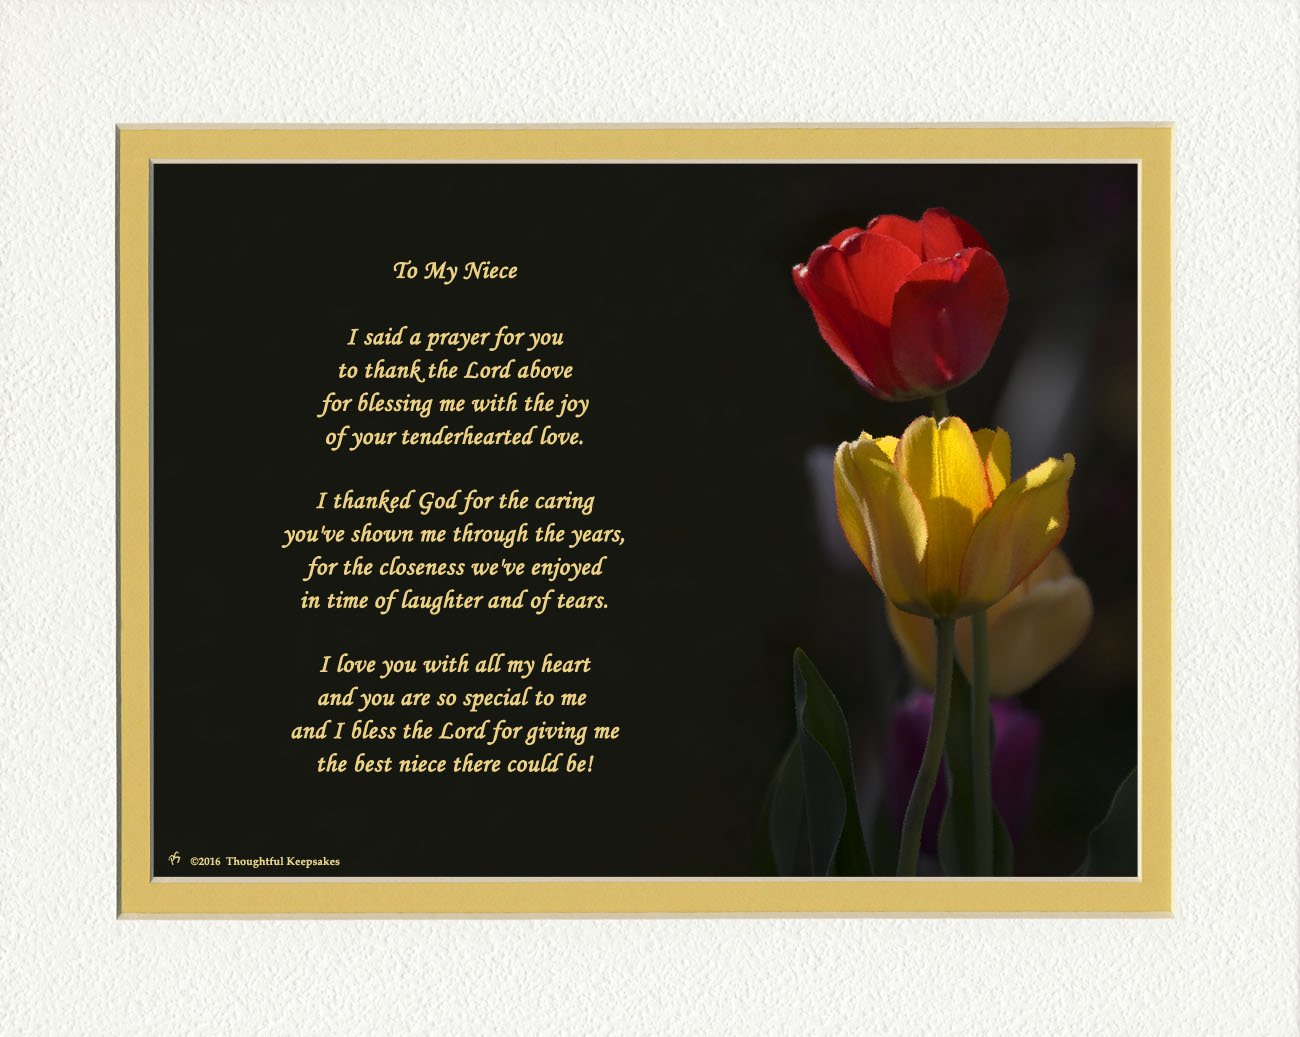 Niece Gift with ''Thank You Prayer for Best Niece'' Poem. Tulips Photo, 8x10 Double Matted. Special Birthday or Christmas Gifts for Niece.